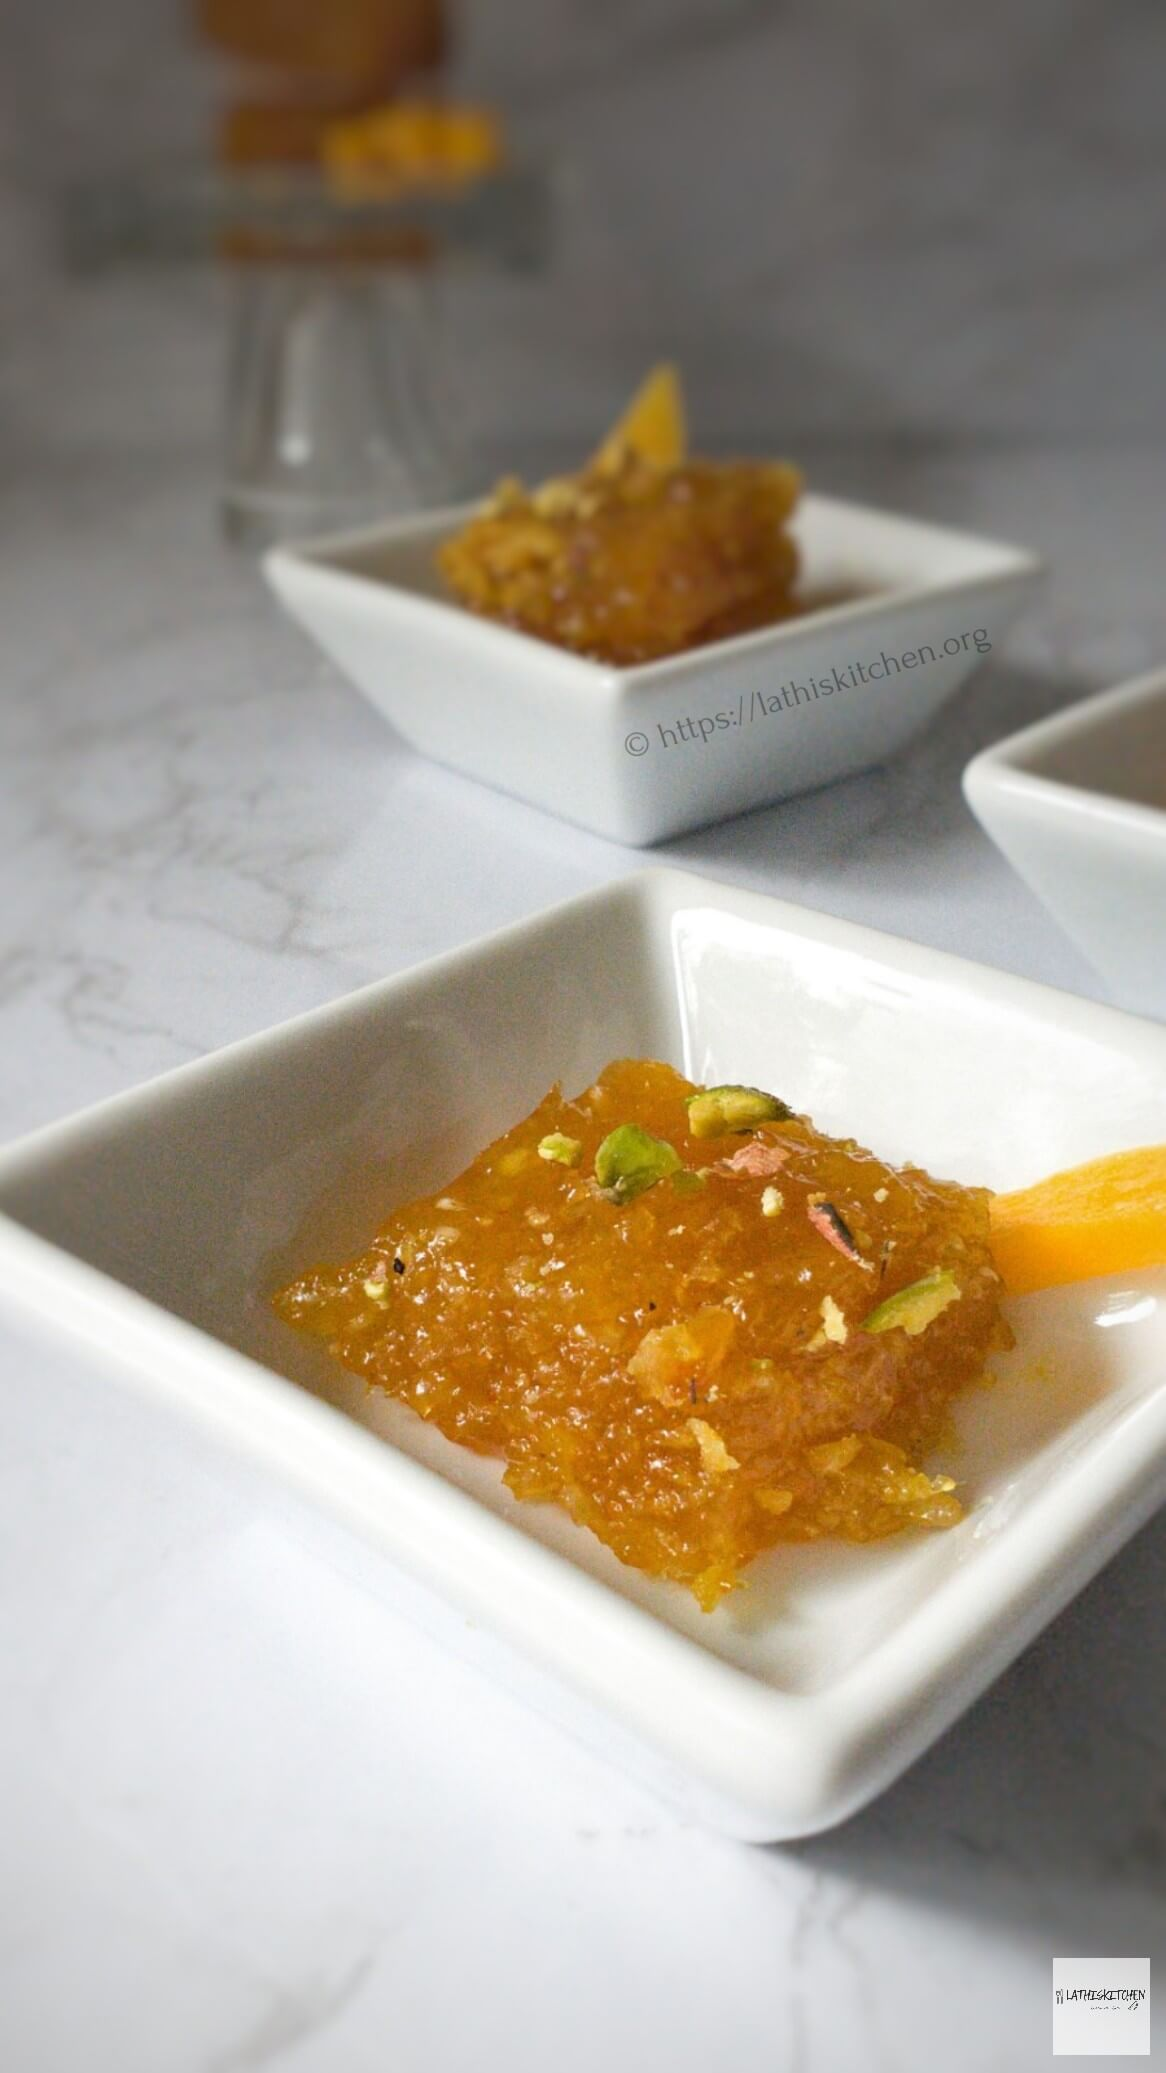 Bowls with Mango Coconut burfi.